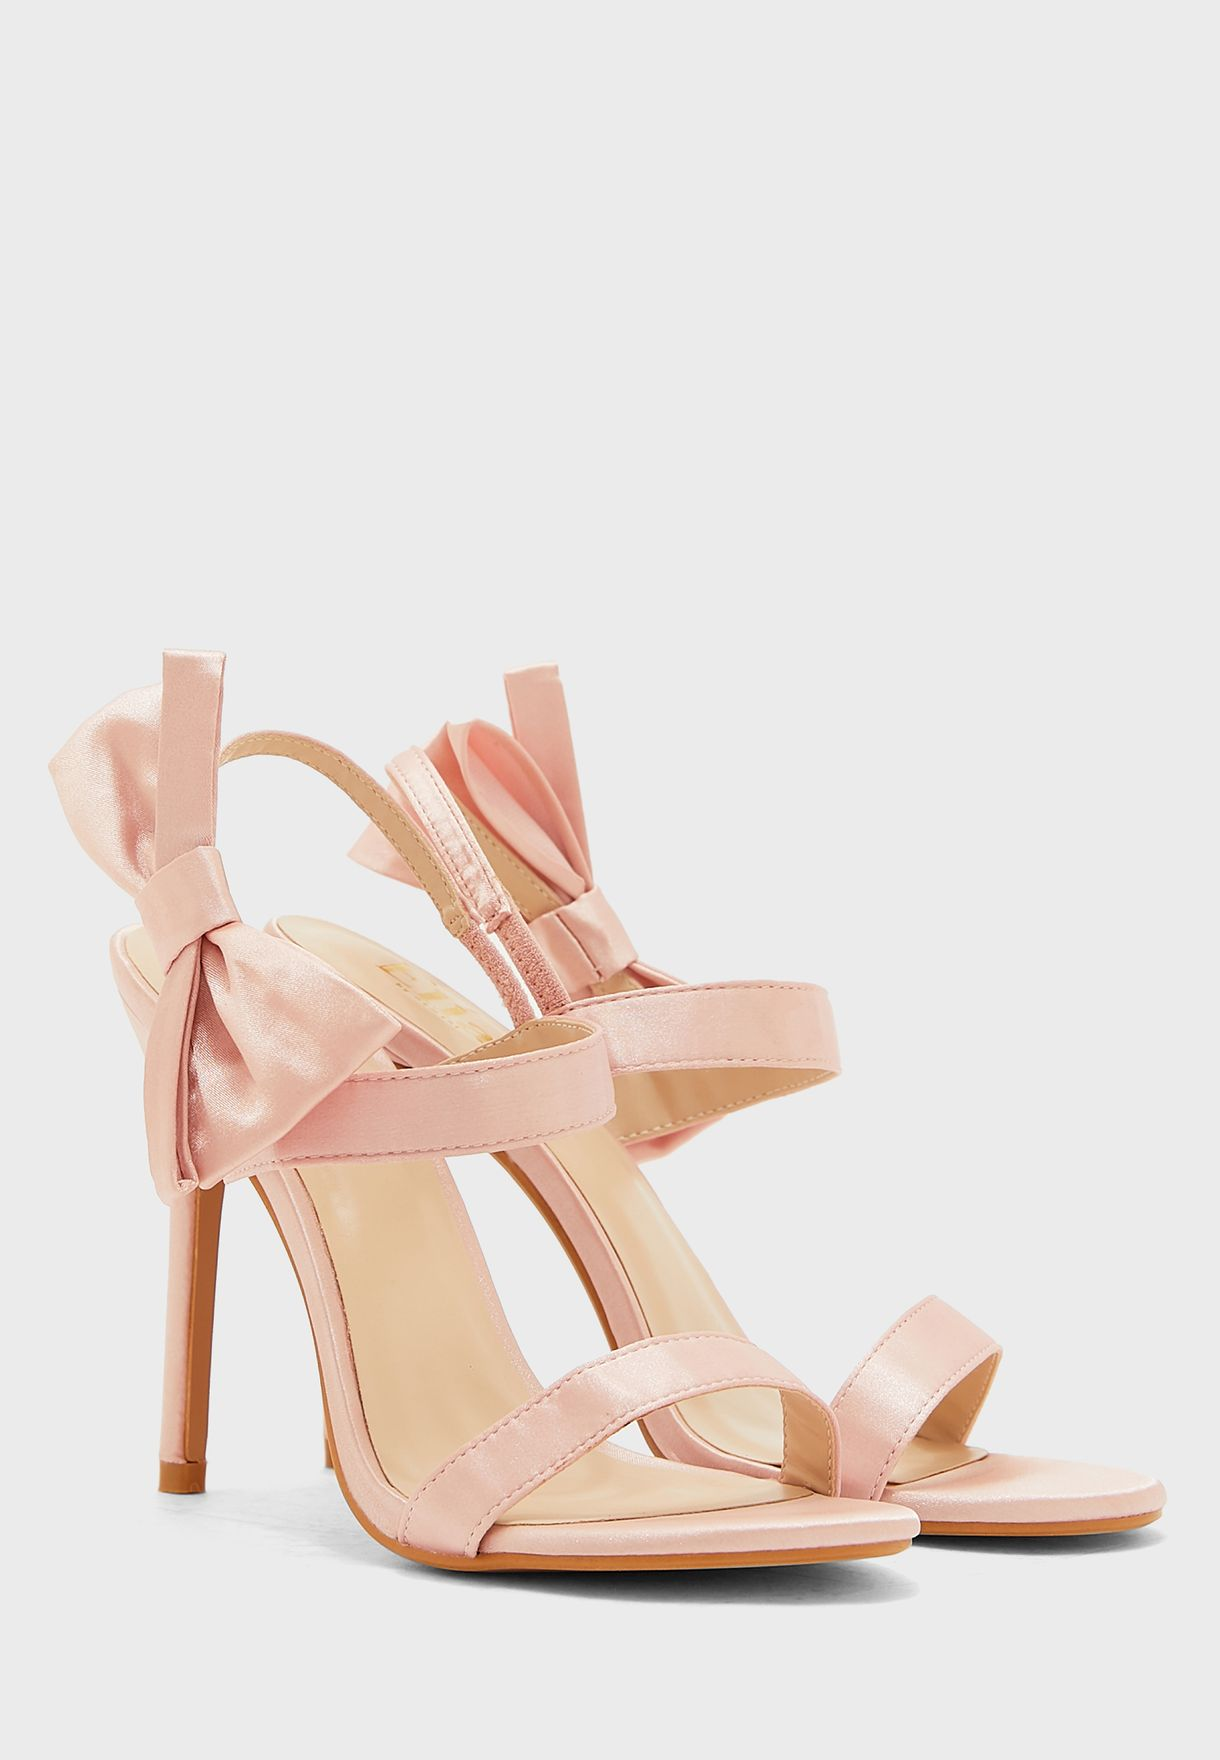 Oversized Bow Detail Ankle Strap Stiletto Sandal